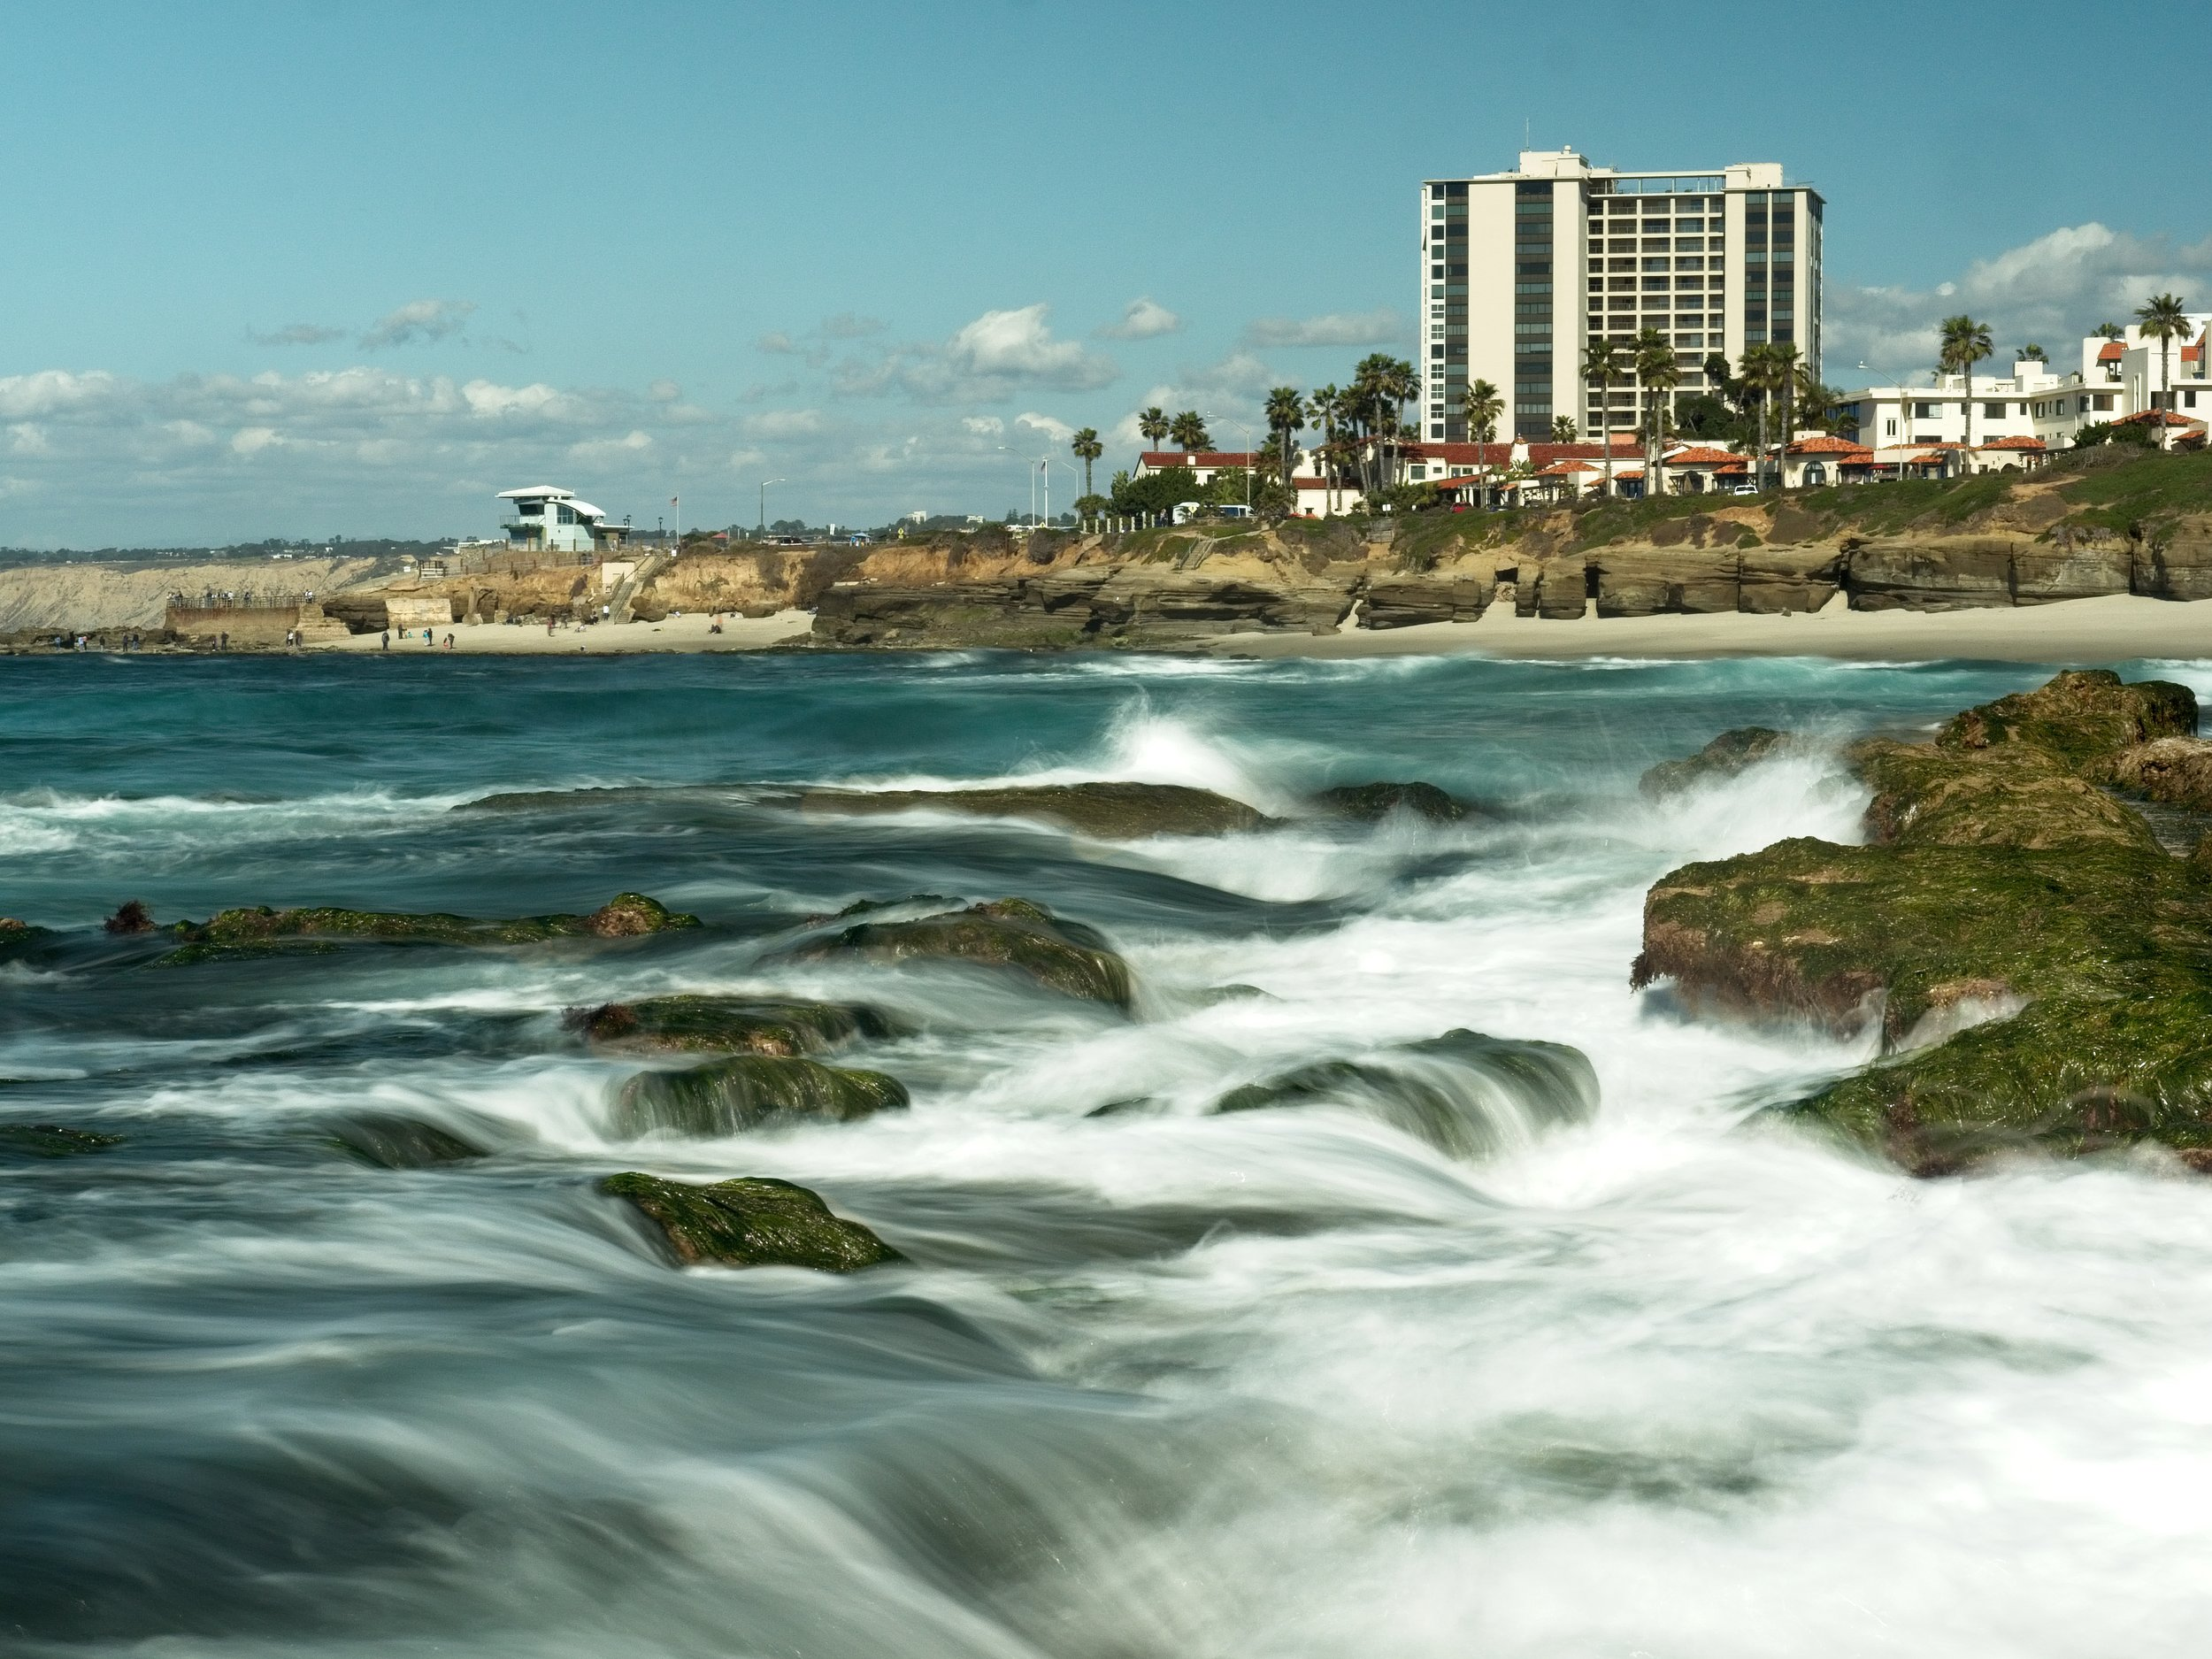 The waves breaking against the reef at the Tide Pool areas of La Jolla